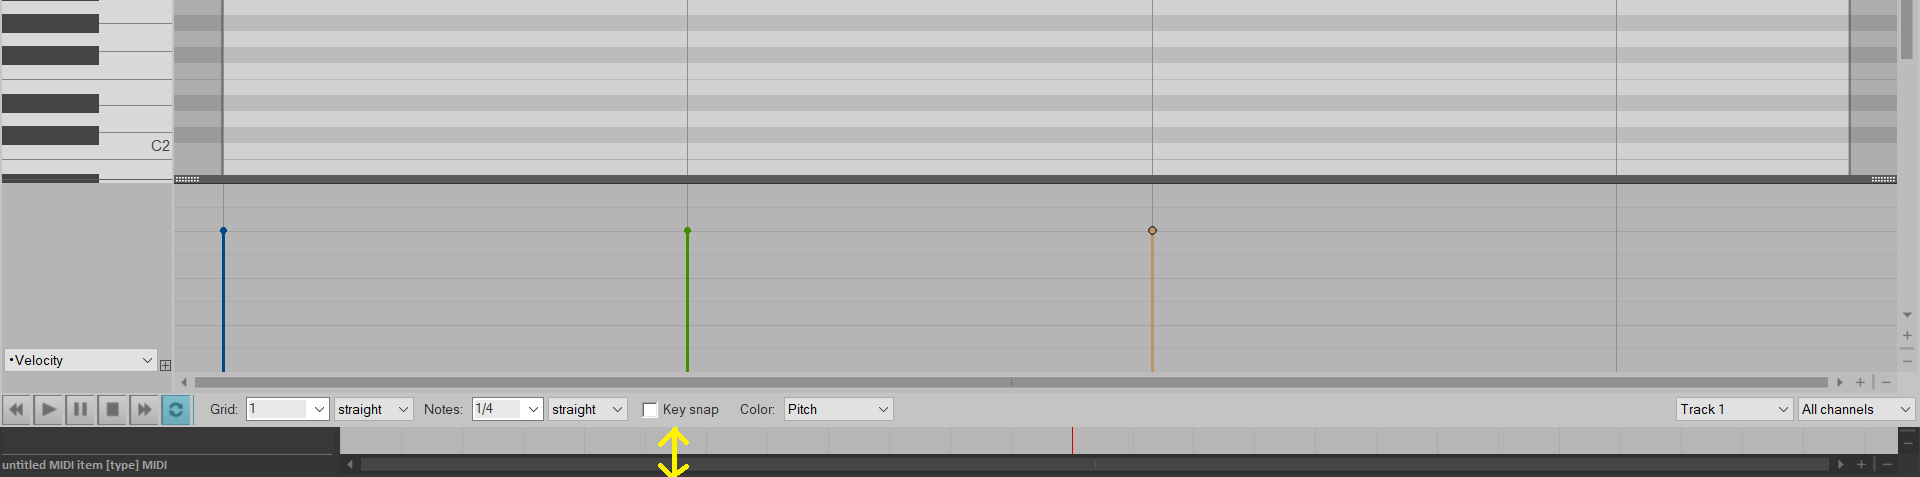 MIDI editor not expanded